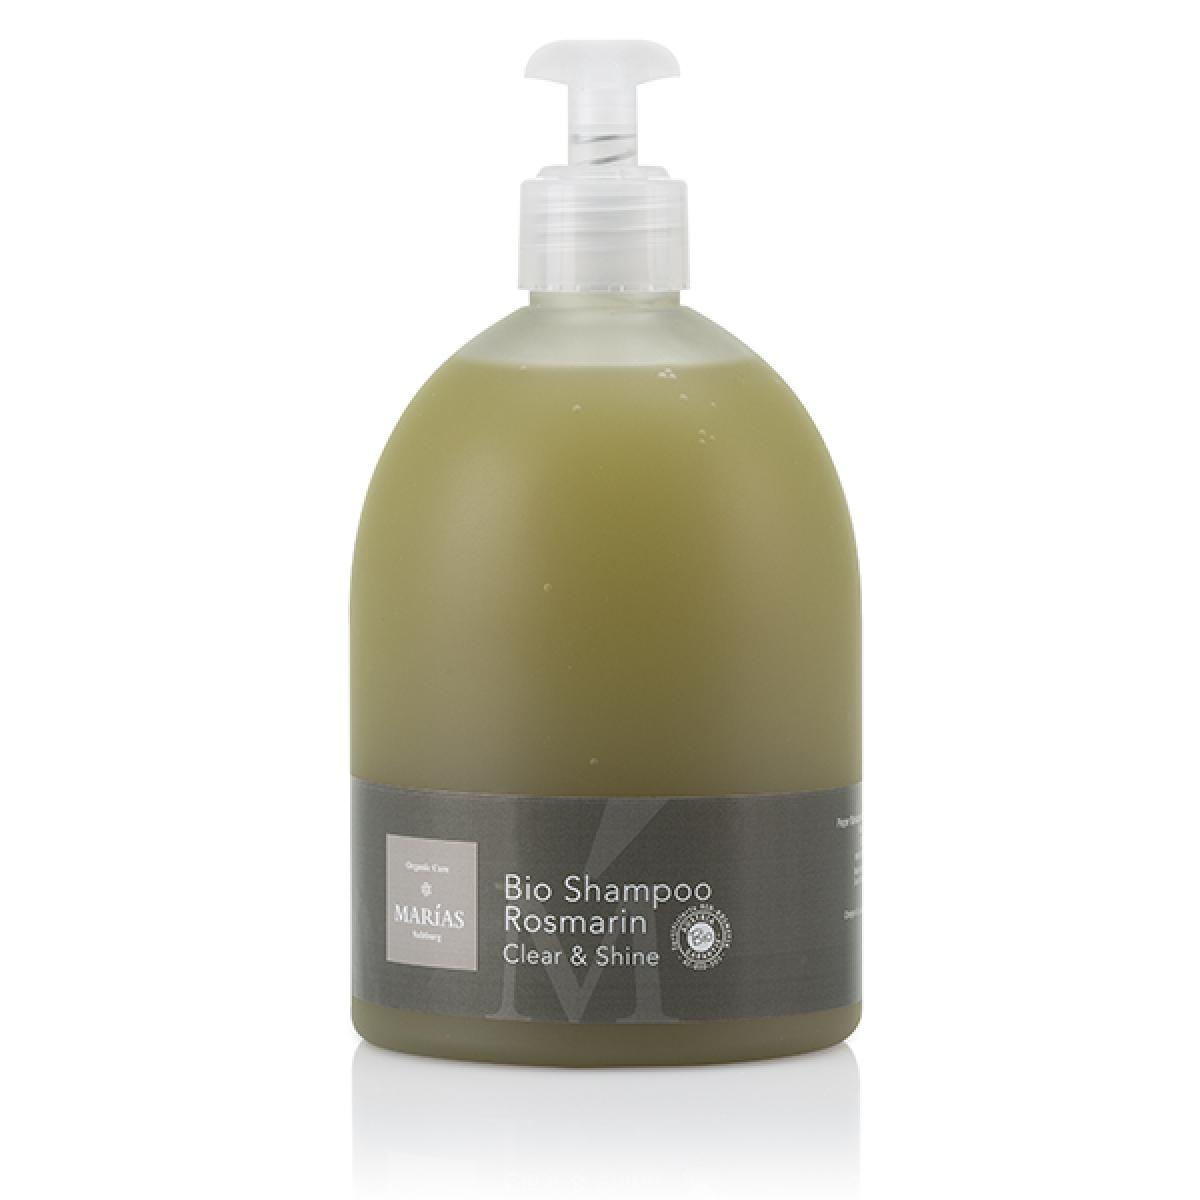 Bio Shampoo Rosmarin Clear & Shine, 500 ml